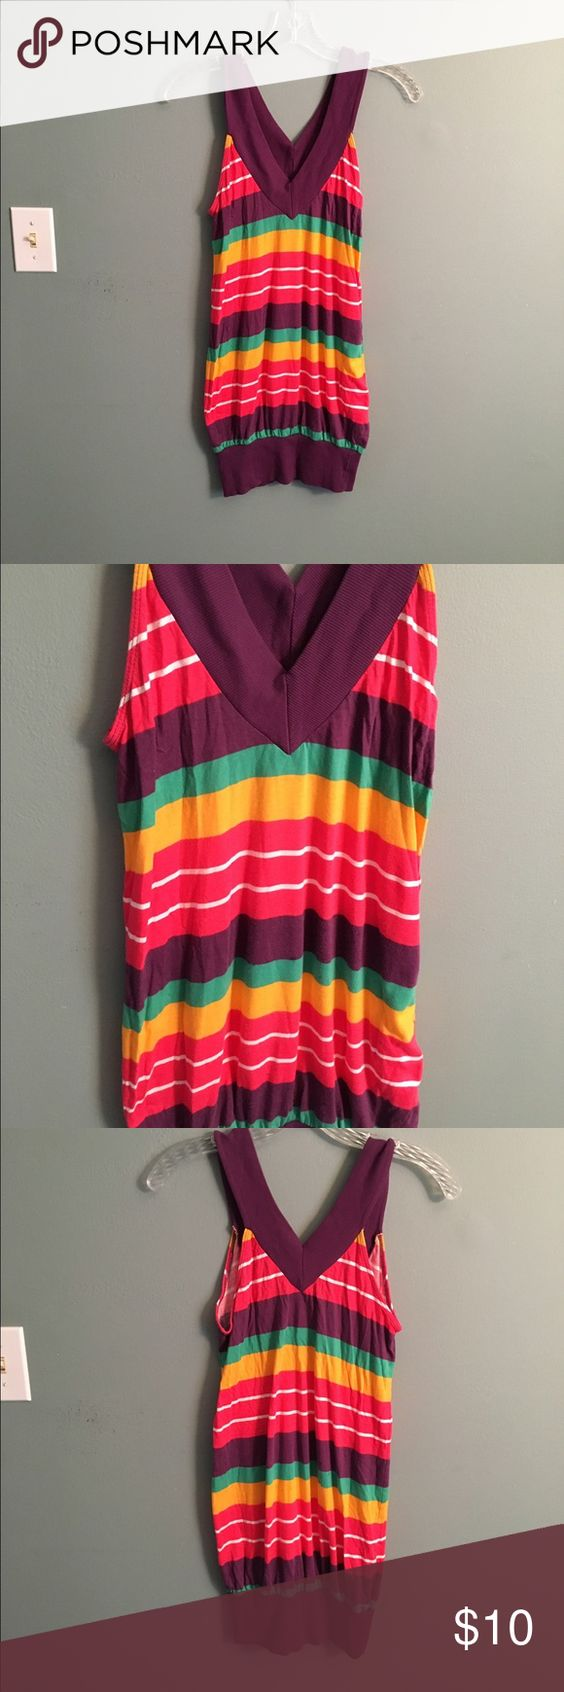 Striped top Nwot. Never worn. Size small. Tunic length Tops Tank Tops